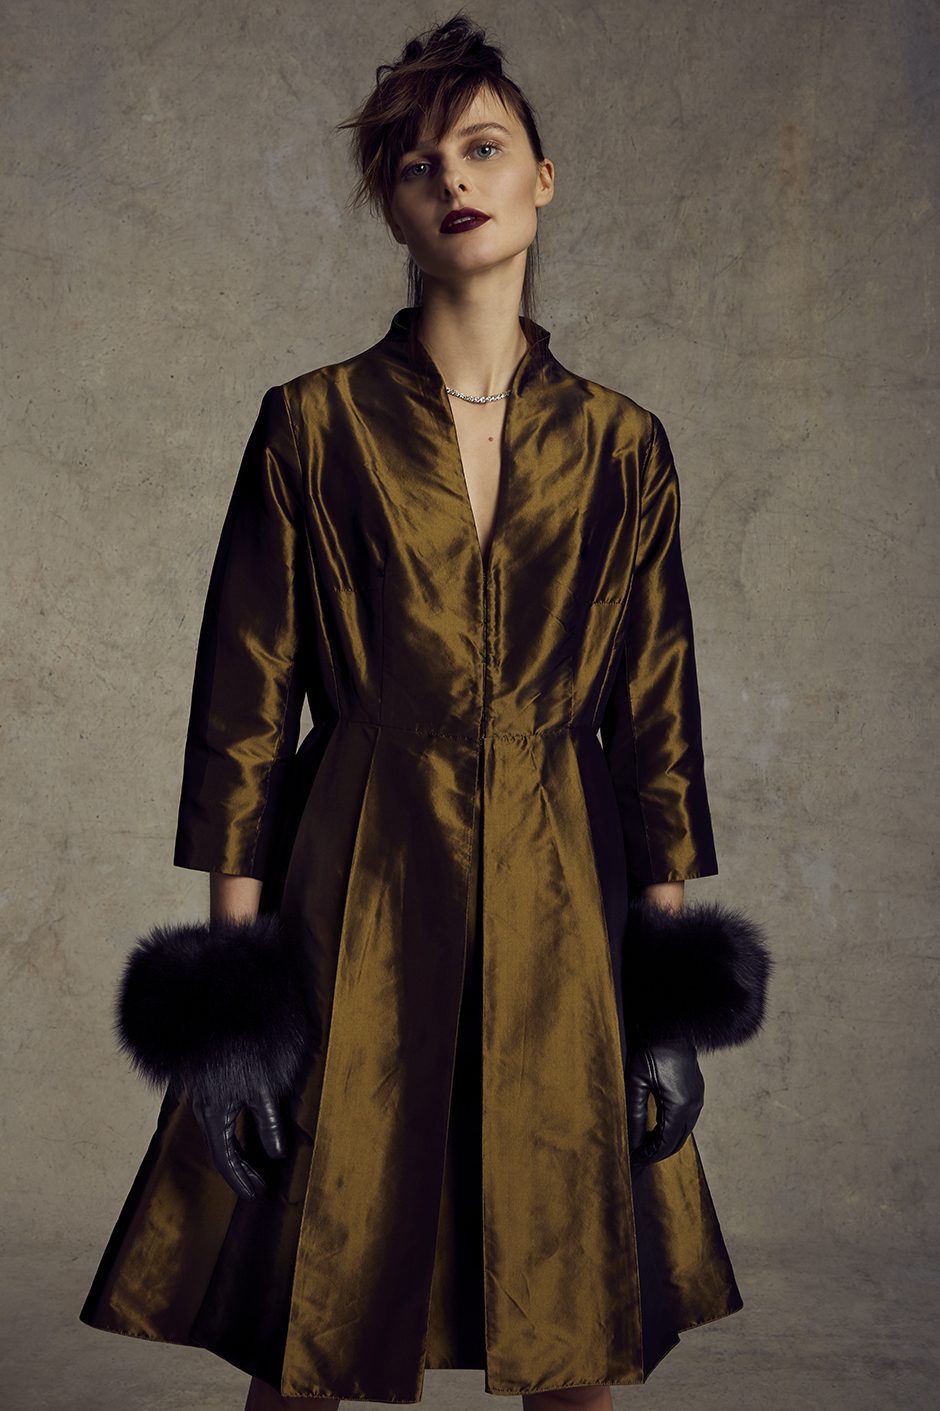 ARCADIA DRESS   SILK TAFFETA, STRETCH SILK CHARMEUSE LINING      CATHERINE GLOVES   TOUCH POINT TECH FRIENDLY LAMBSKIN, FOX FUR CASHMERE LINING      Contact for inquiry